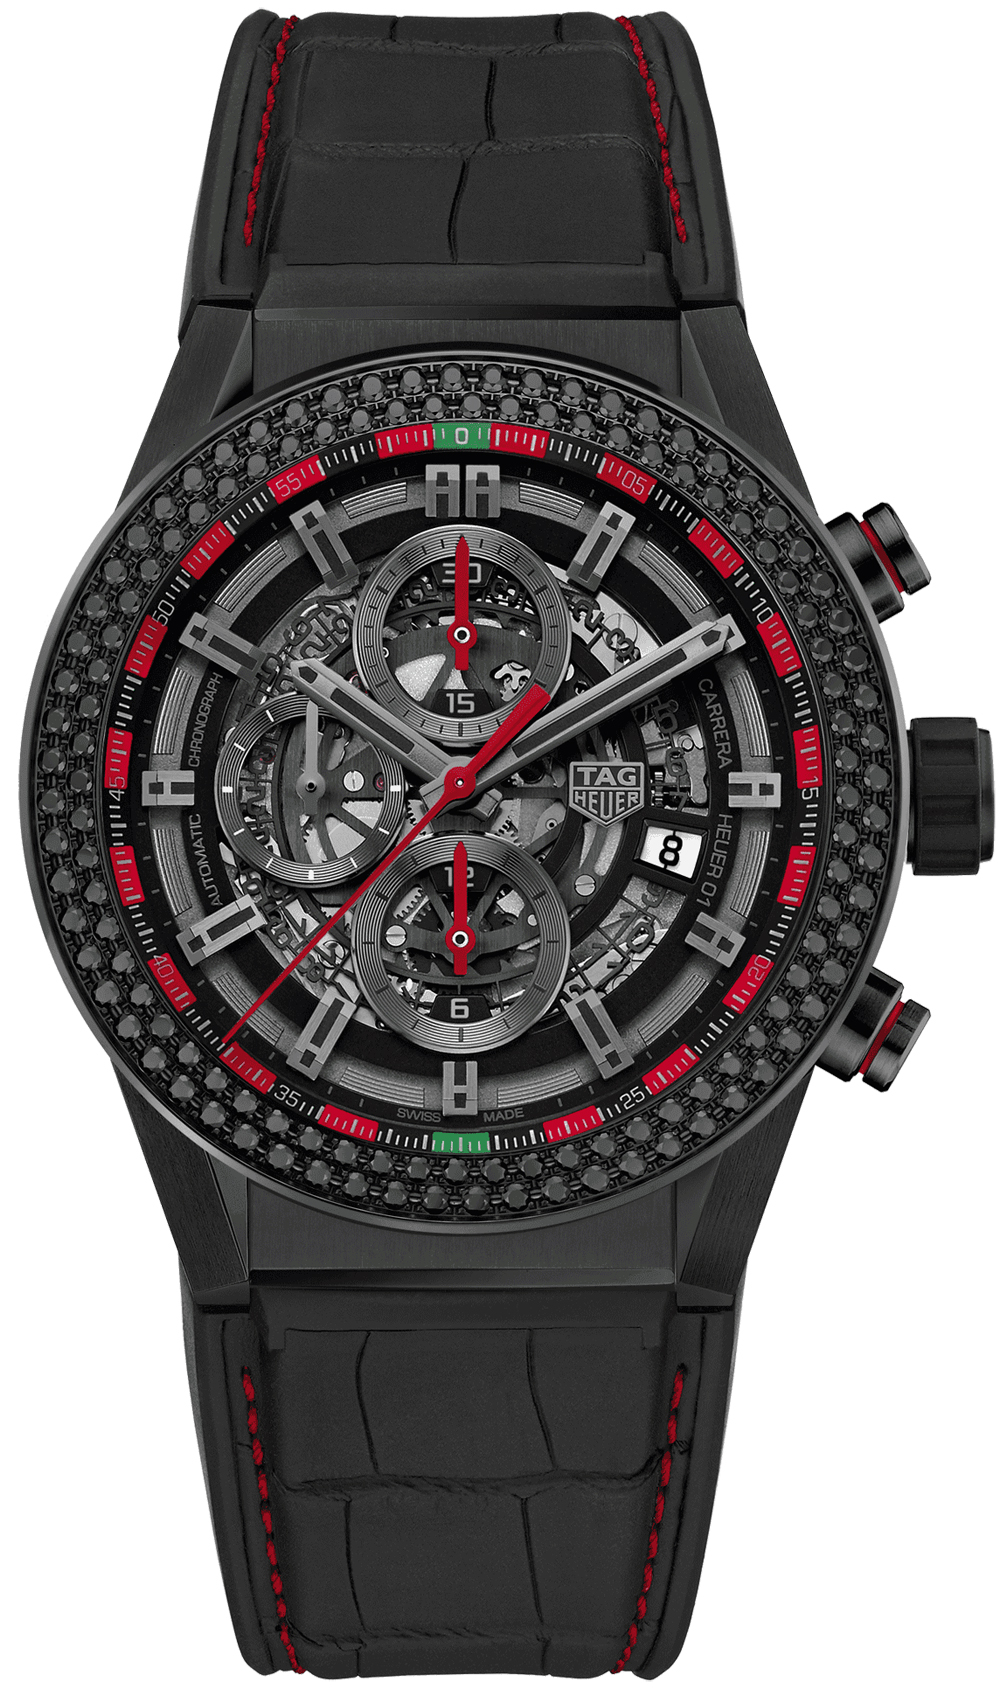 Limited Edition Birthday Collection: TAG Heuer Las Vegas Limited Edition Watch